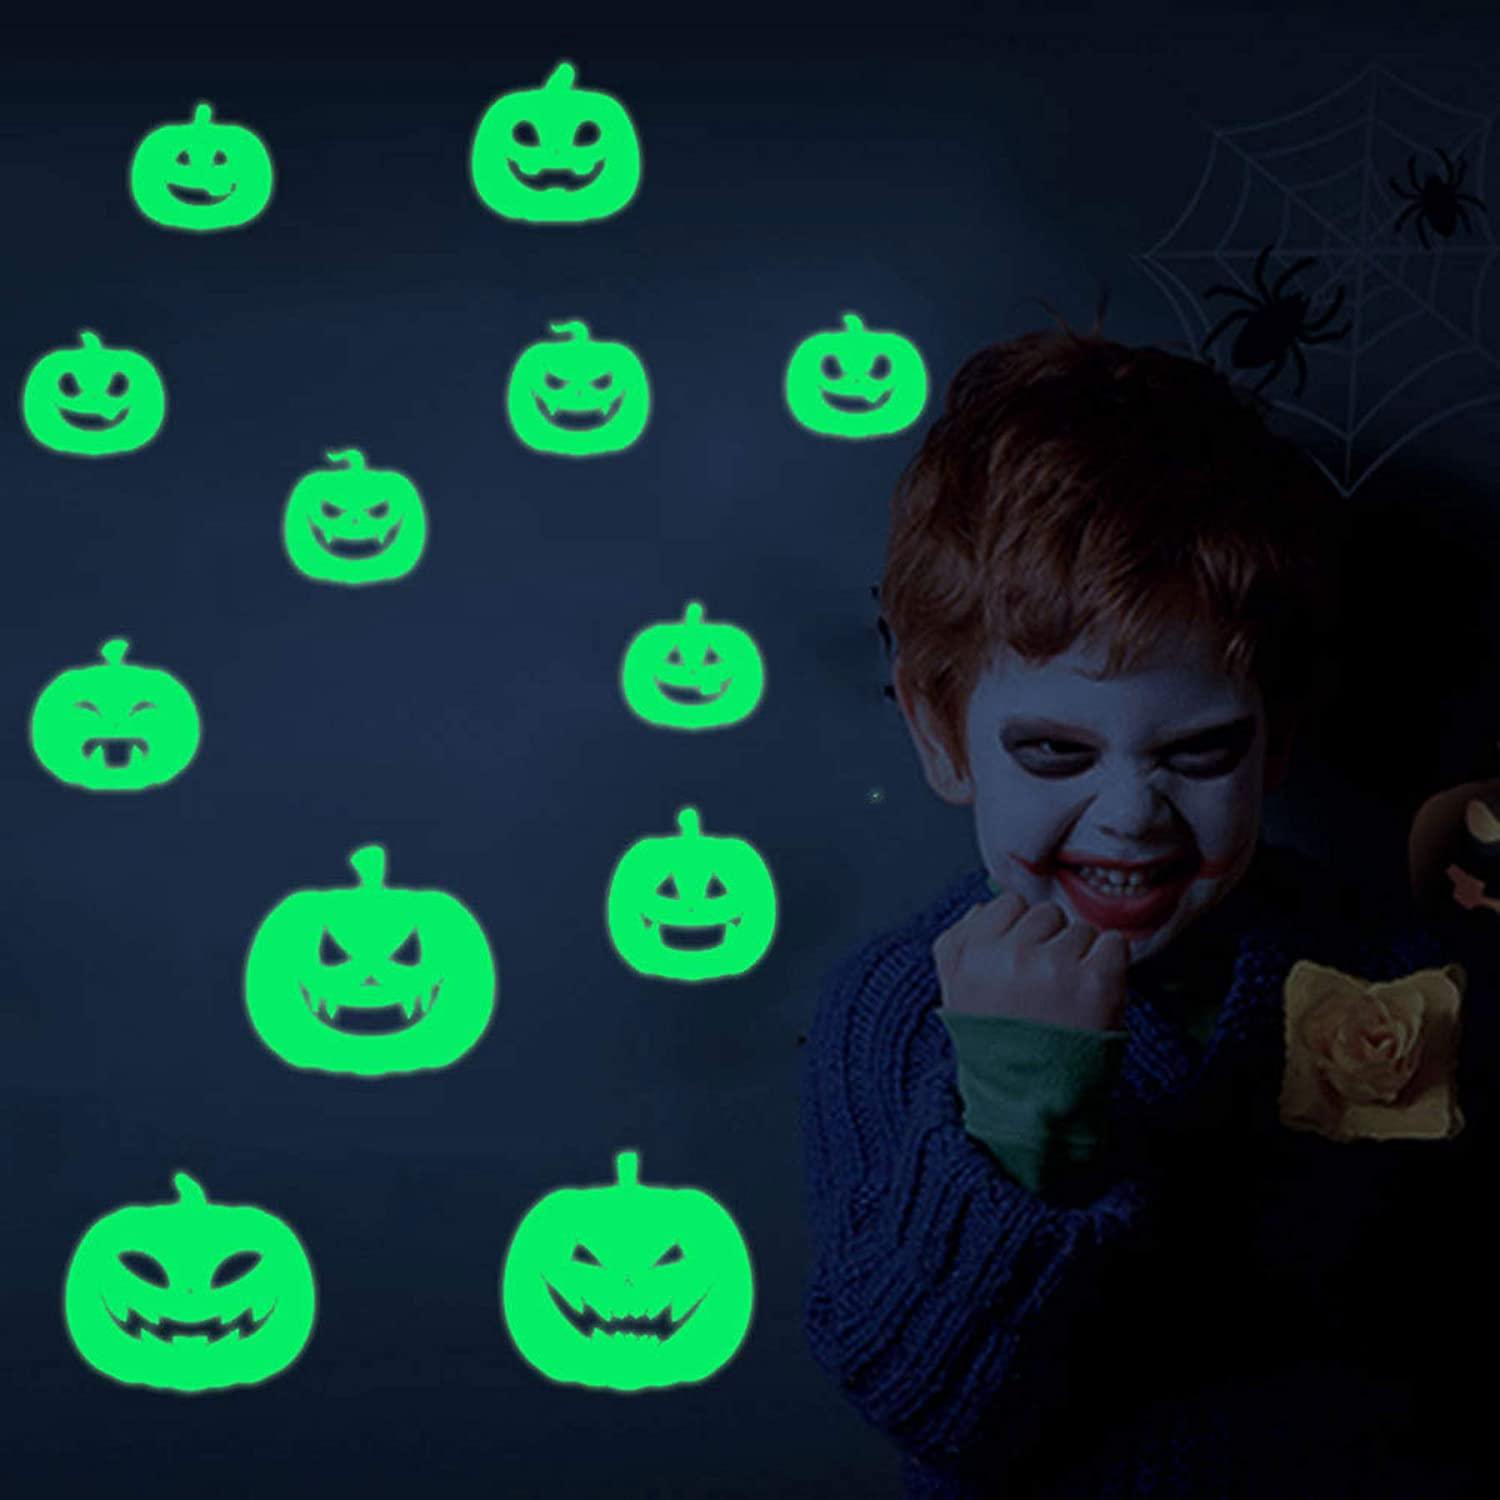 76 Peieces Halloween Pumpkin Decorations Luminous Stickers Waterproof Party Wall Decals Removable Glow Sticker